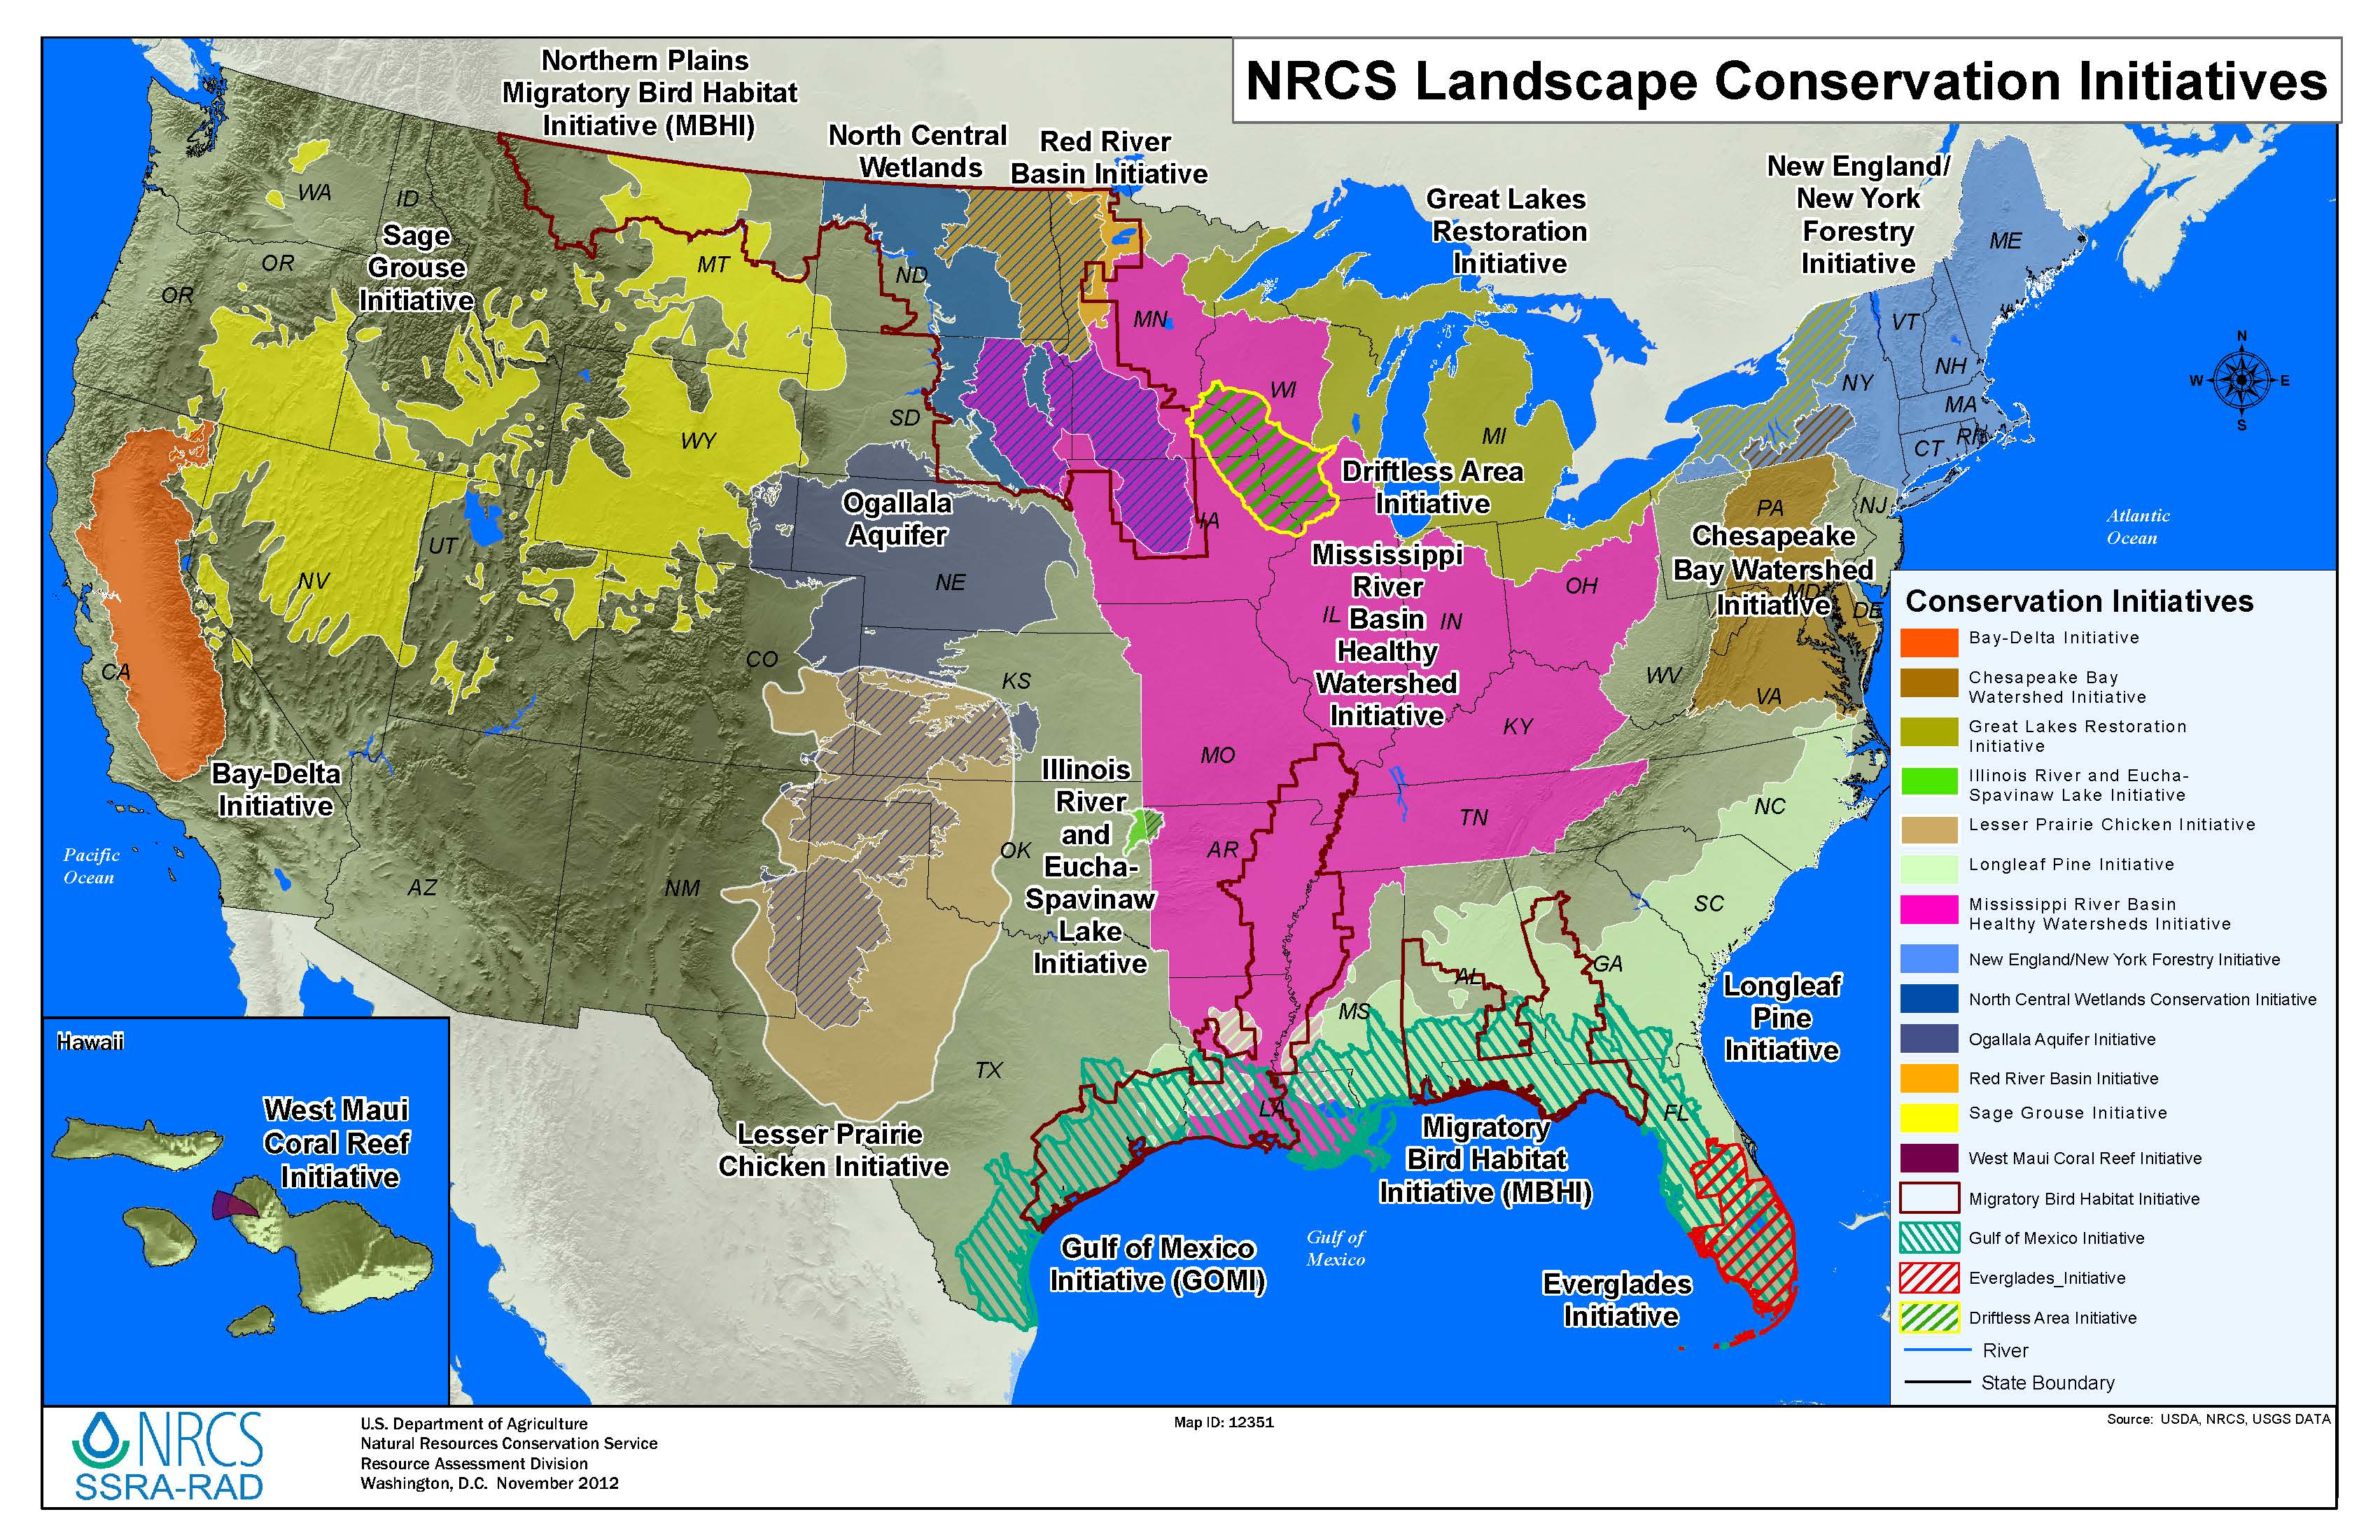 natural resources conservation Conservation of resources management of the human use of natural resources to provide the maximum benefit to current generations while maintaining capacity to.